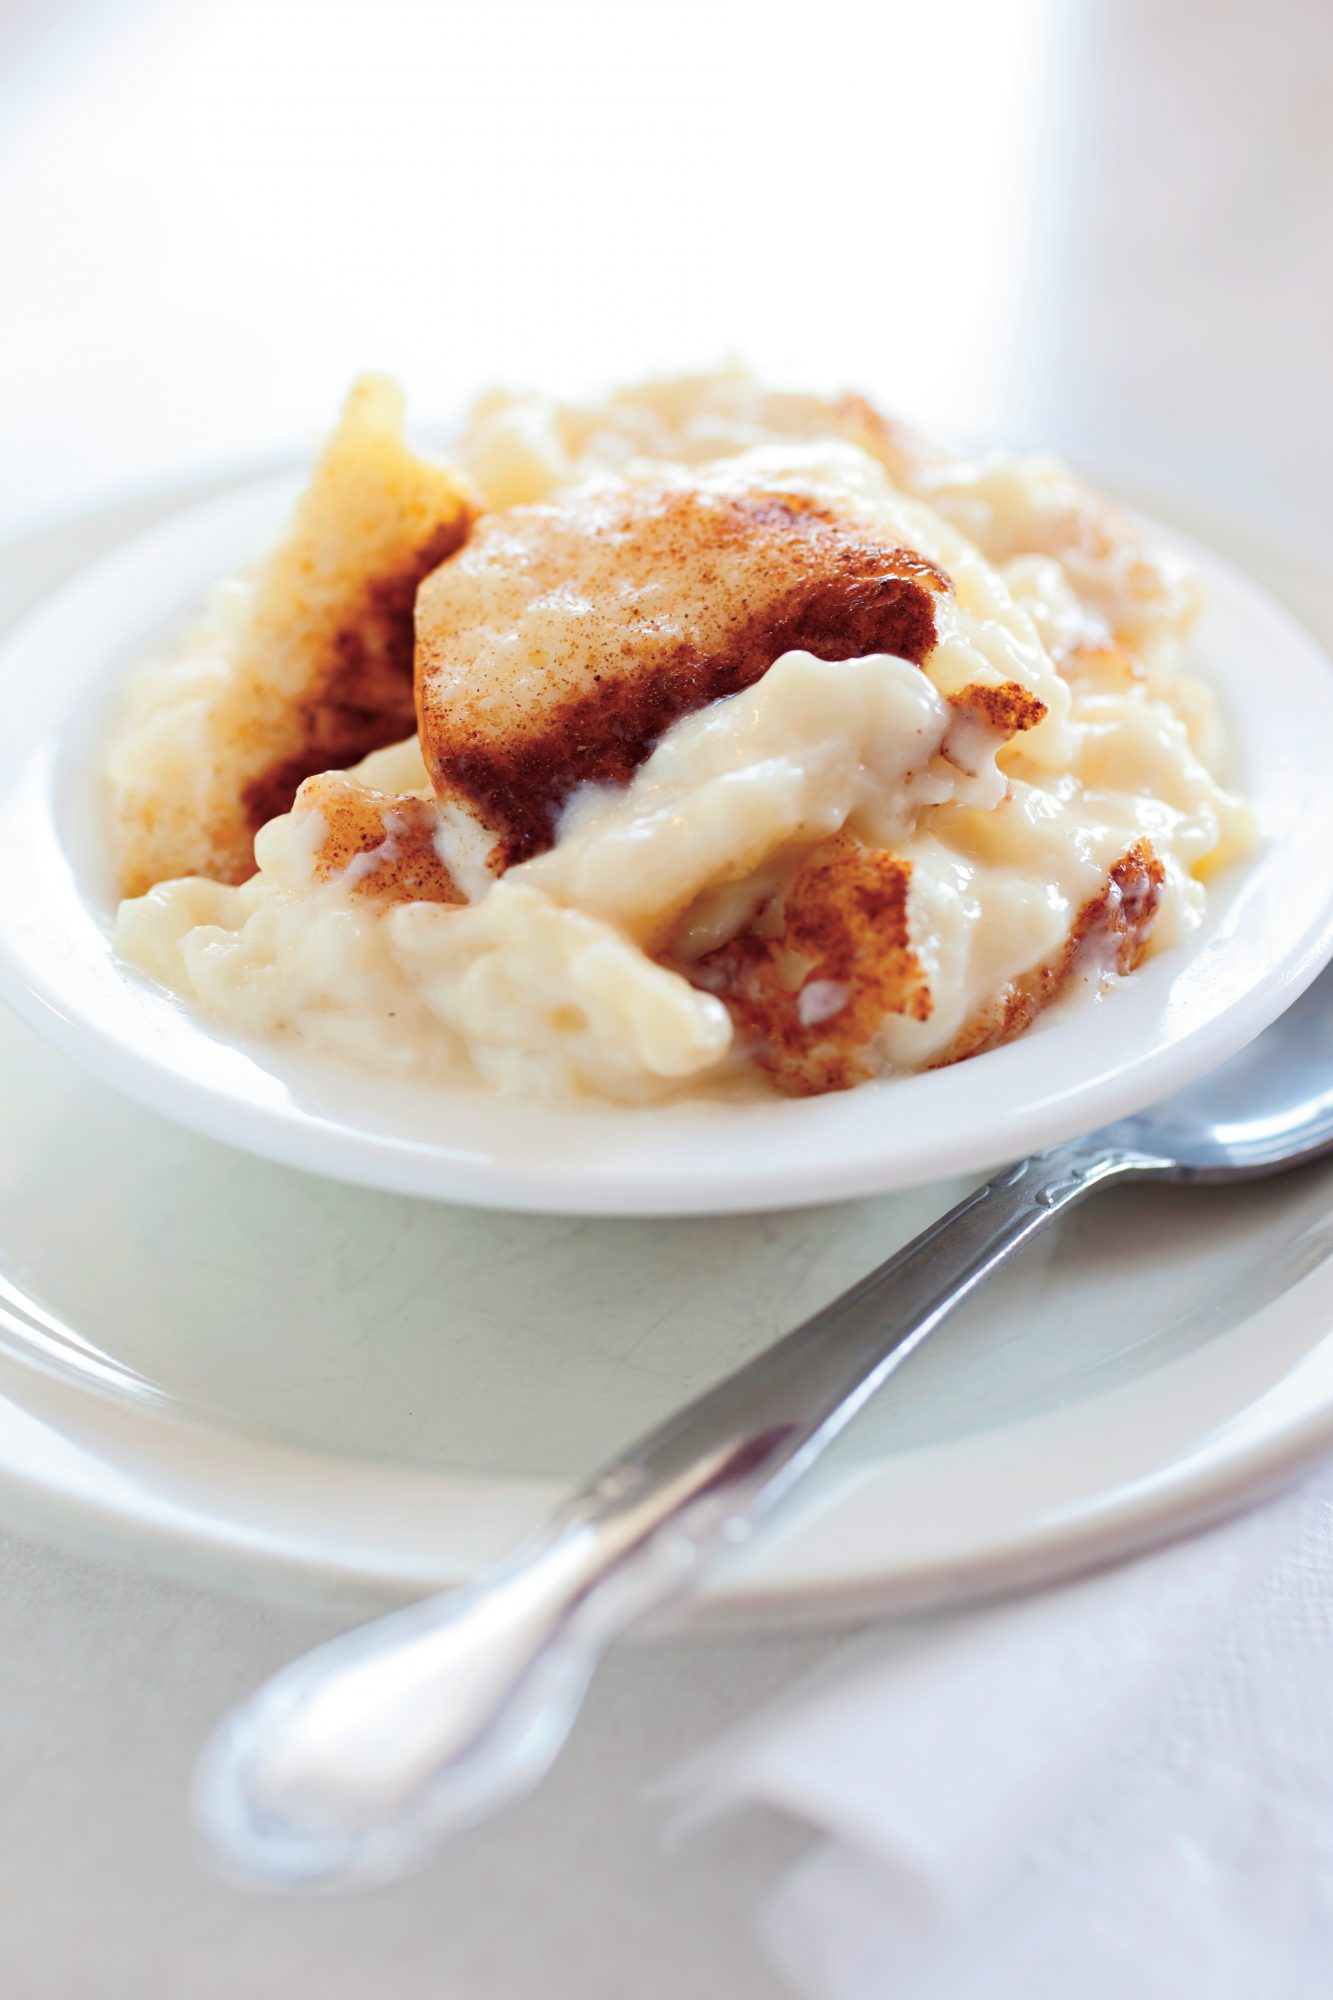 Bel-Loc Rice Pudding